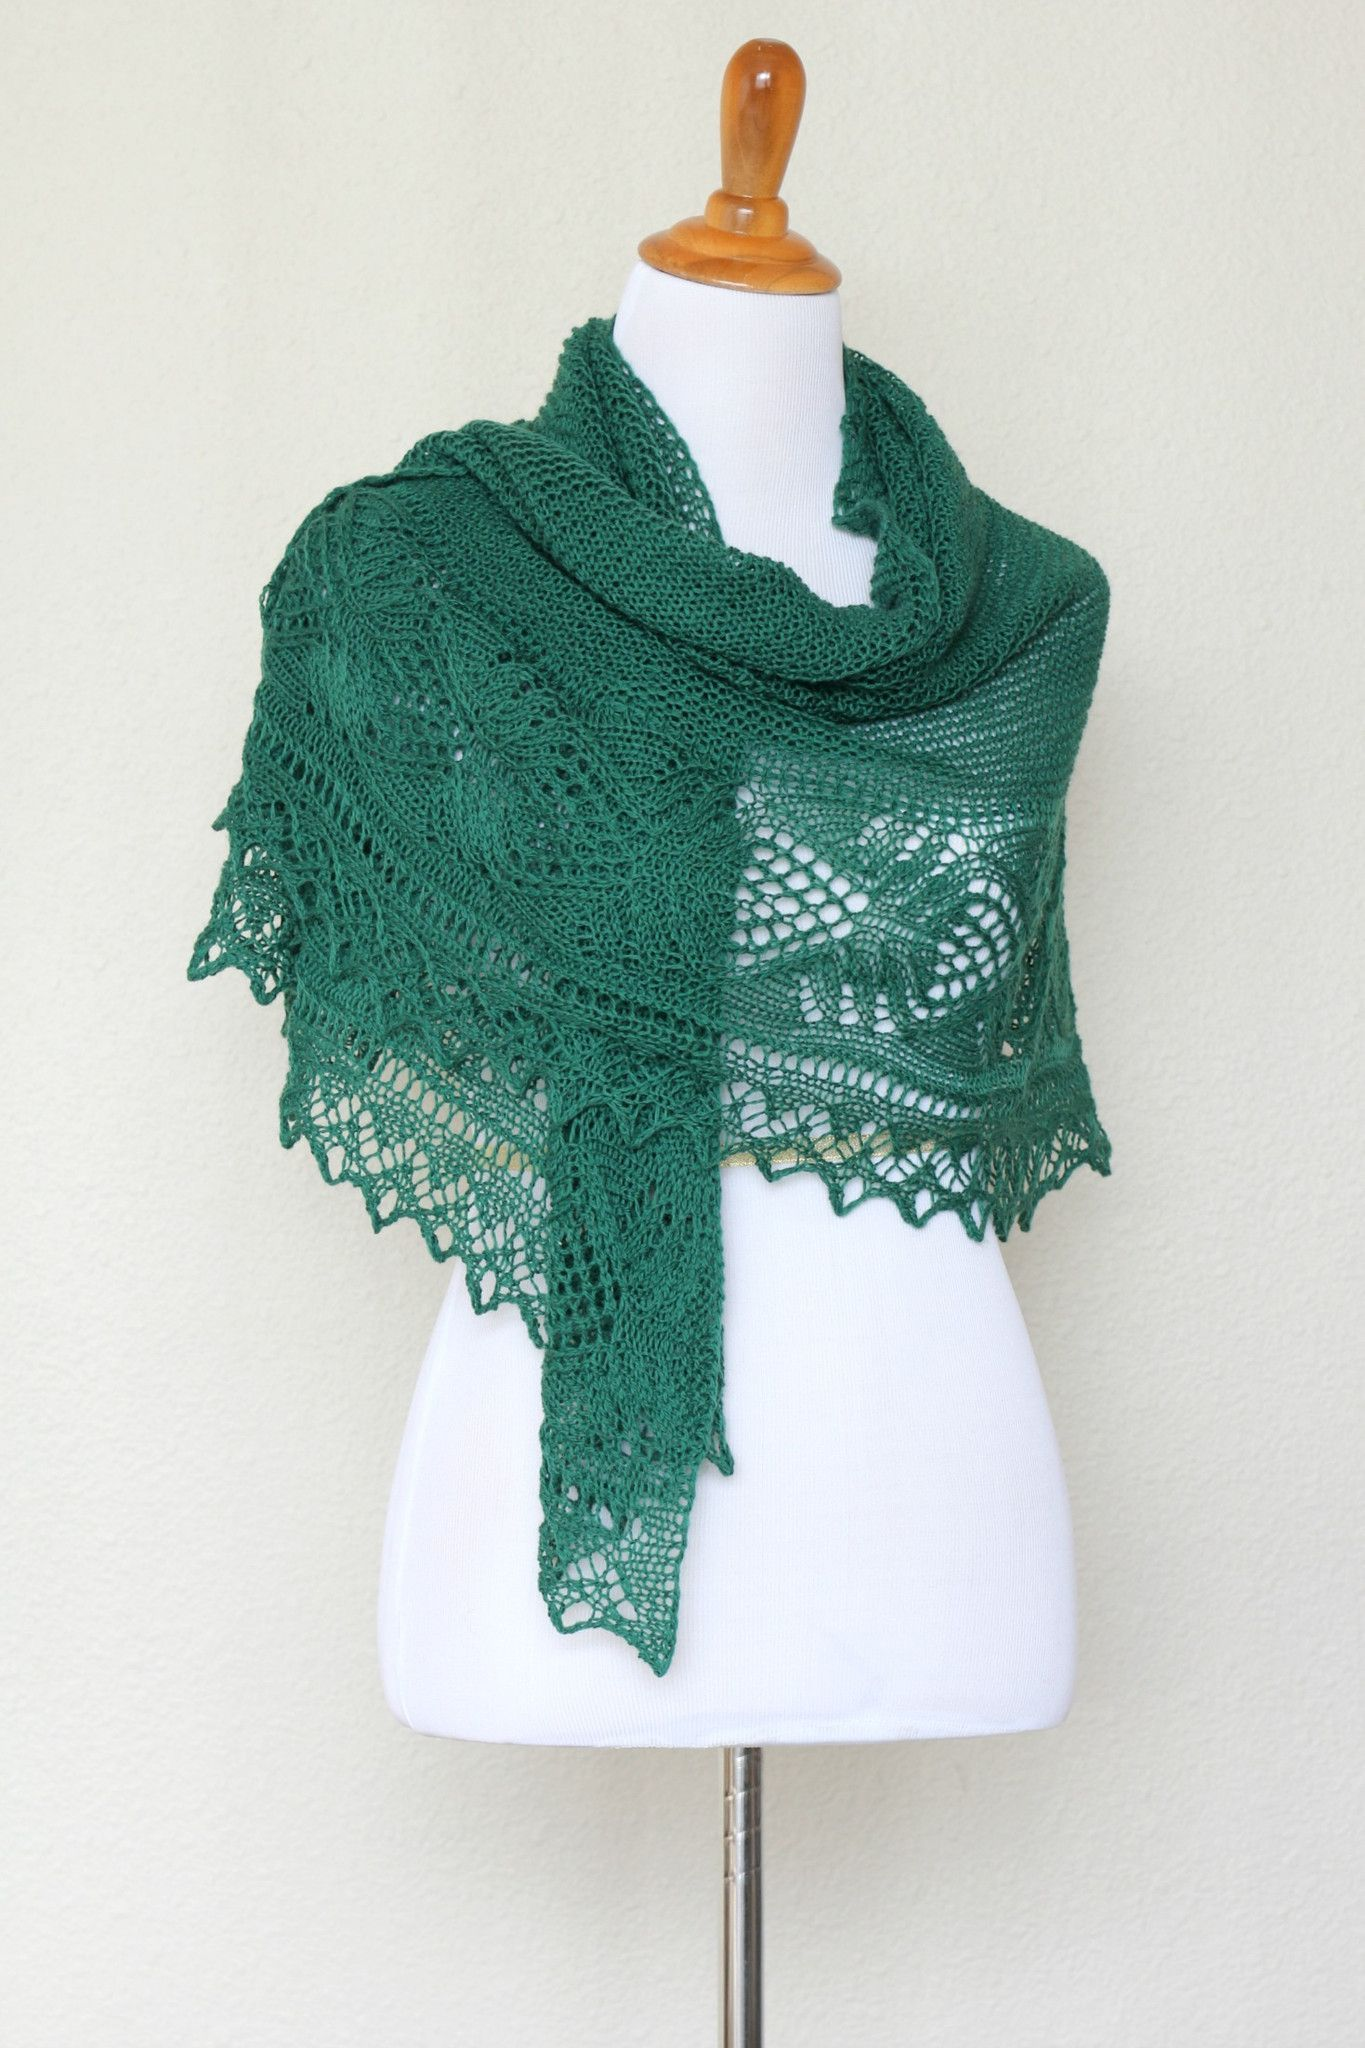 f353b40eec03 This hand knit  shawl is made of 100% wool in lovely forest green color.  The shawl is half-circle shape and perfectly wide to wrap around the body.